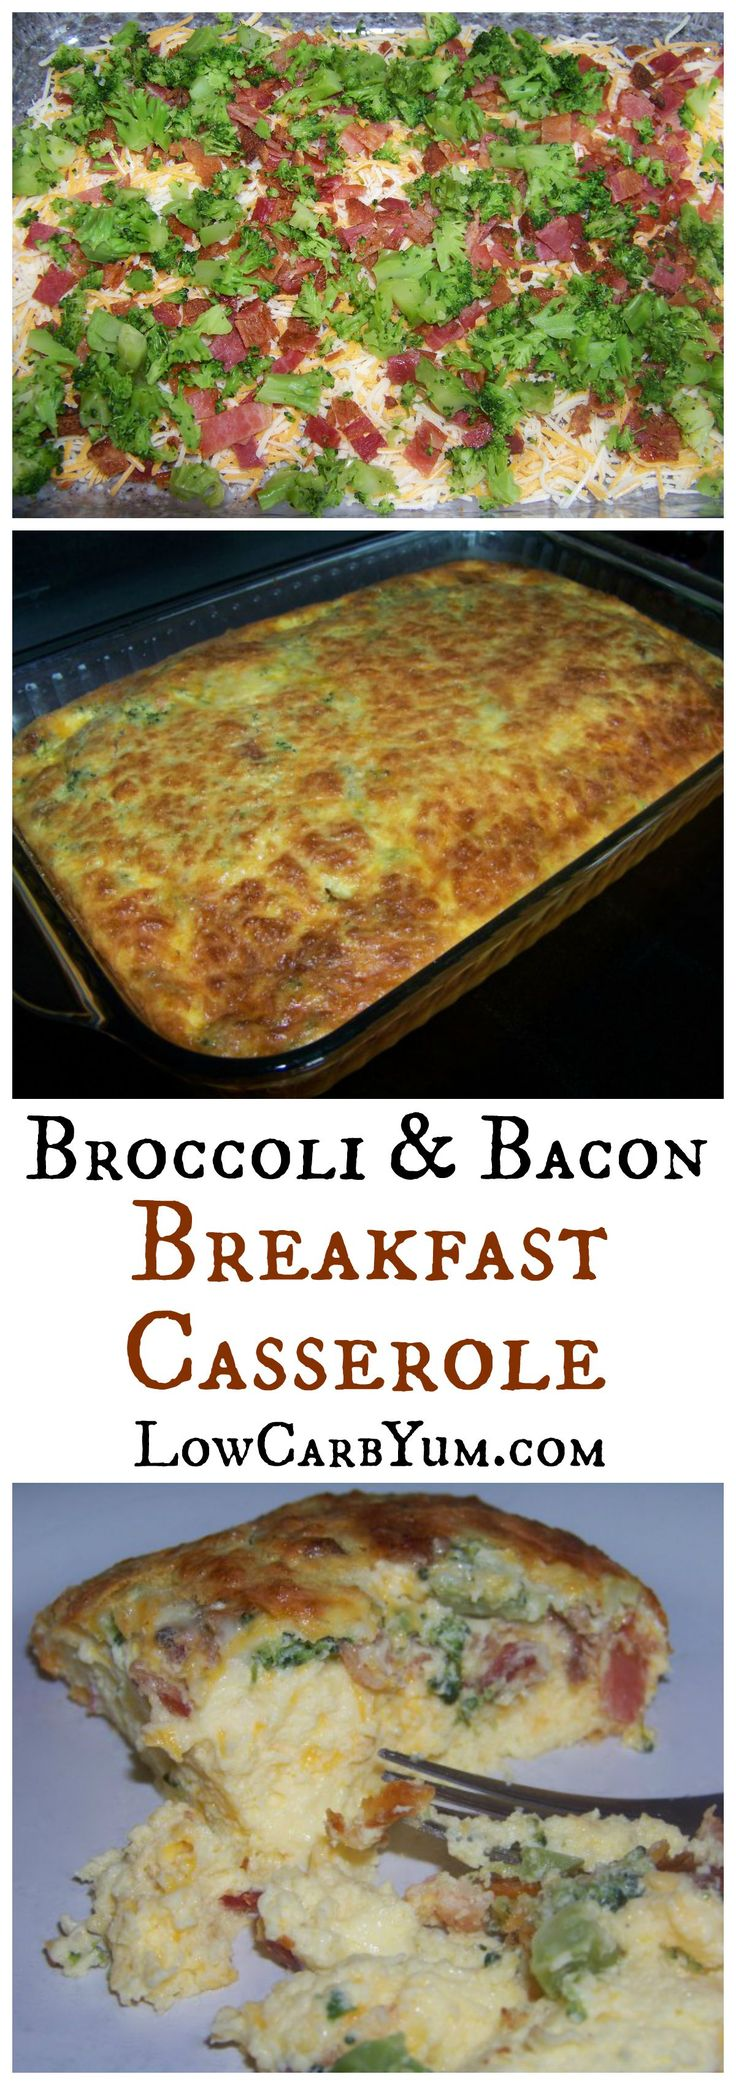 A low carb breakfast casserole with broccoli, bacon, egg, and cheese. Keto, LCHF, Banting recipe.